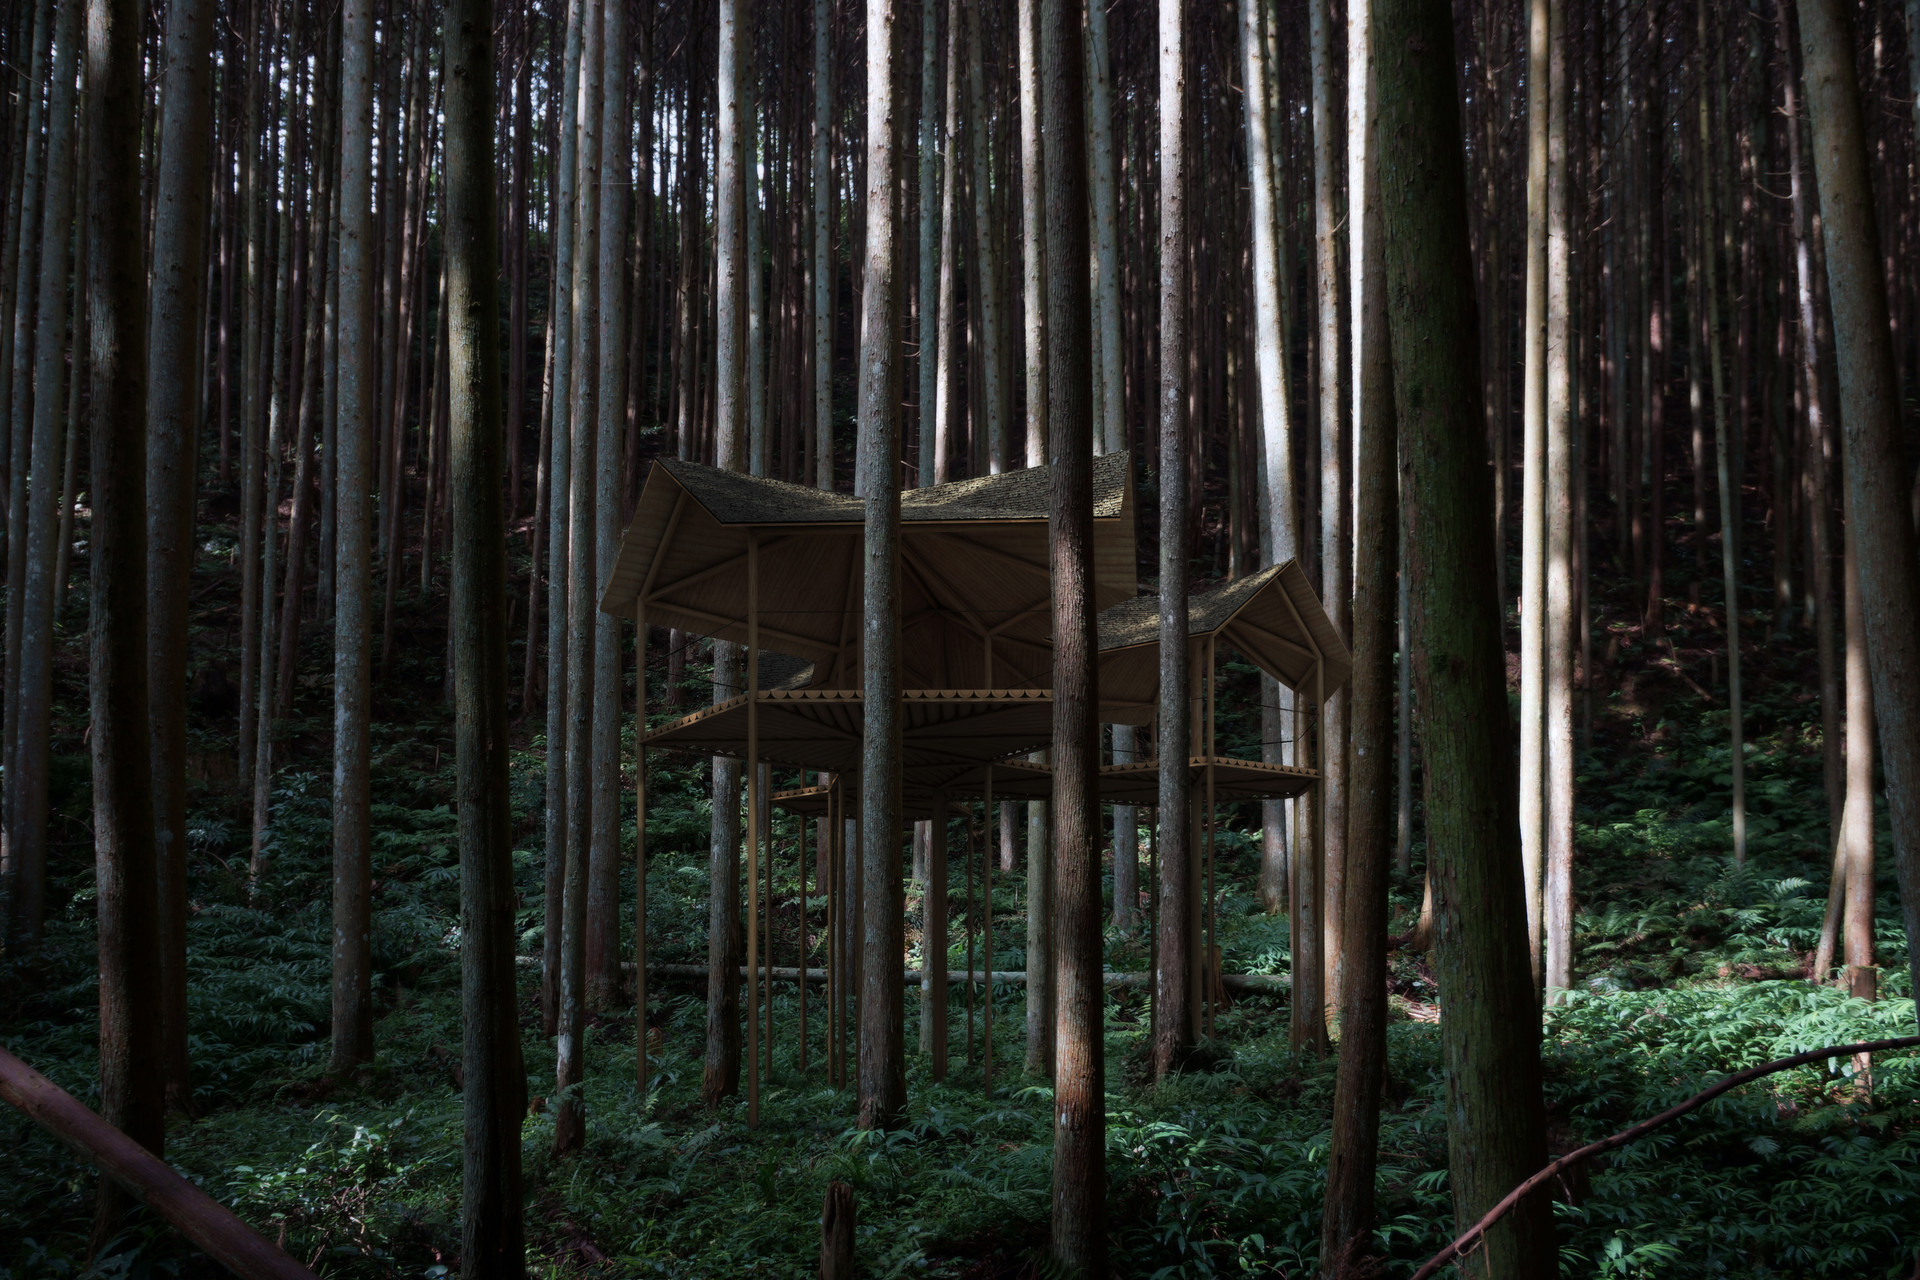 | PJ | nara | tree house | 2012-|